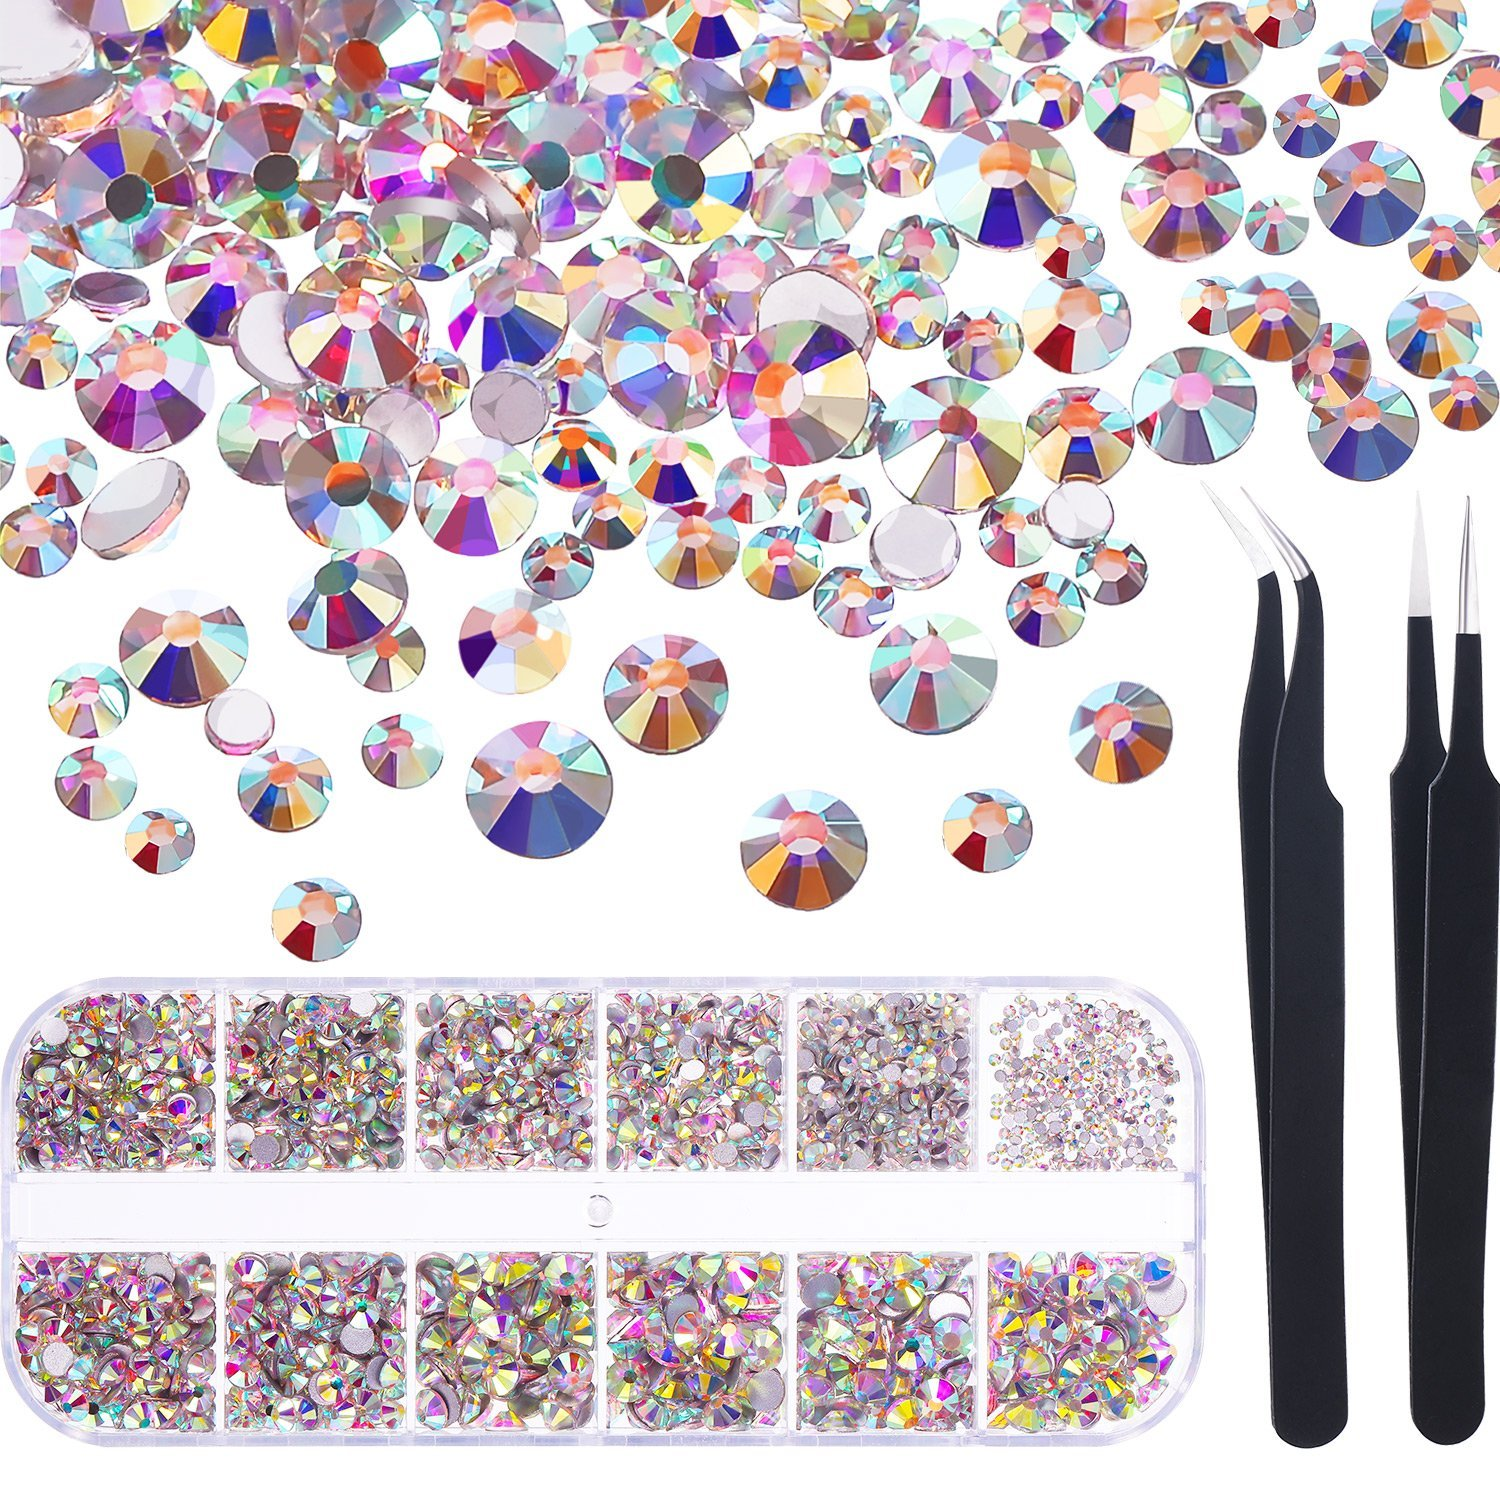 TecUnite 1728 Pieces Crystals Nail Art Rhinestones Round Beads Flatback Glass Charms Gems Stones and 2 Pieces Tweezers with Storage Organizer Box, SS3 6 10 12 16 20, 288 Pieces Each Size (Crystal AB)